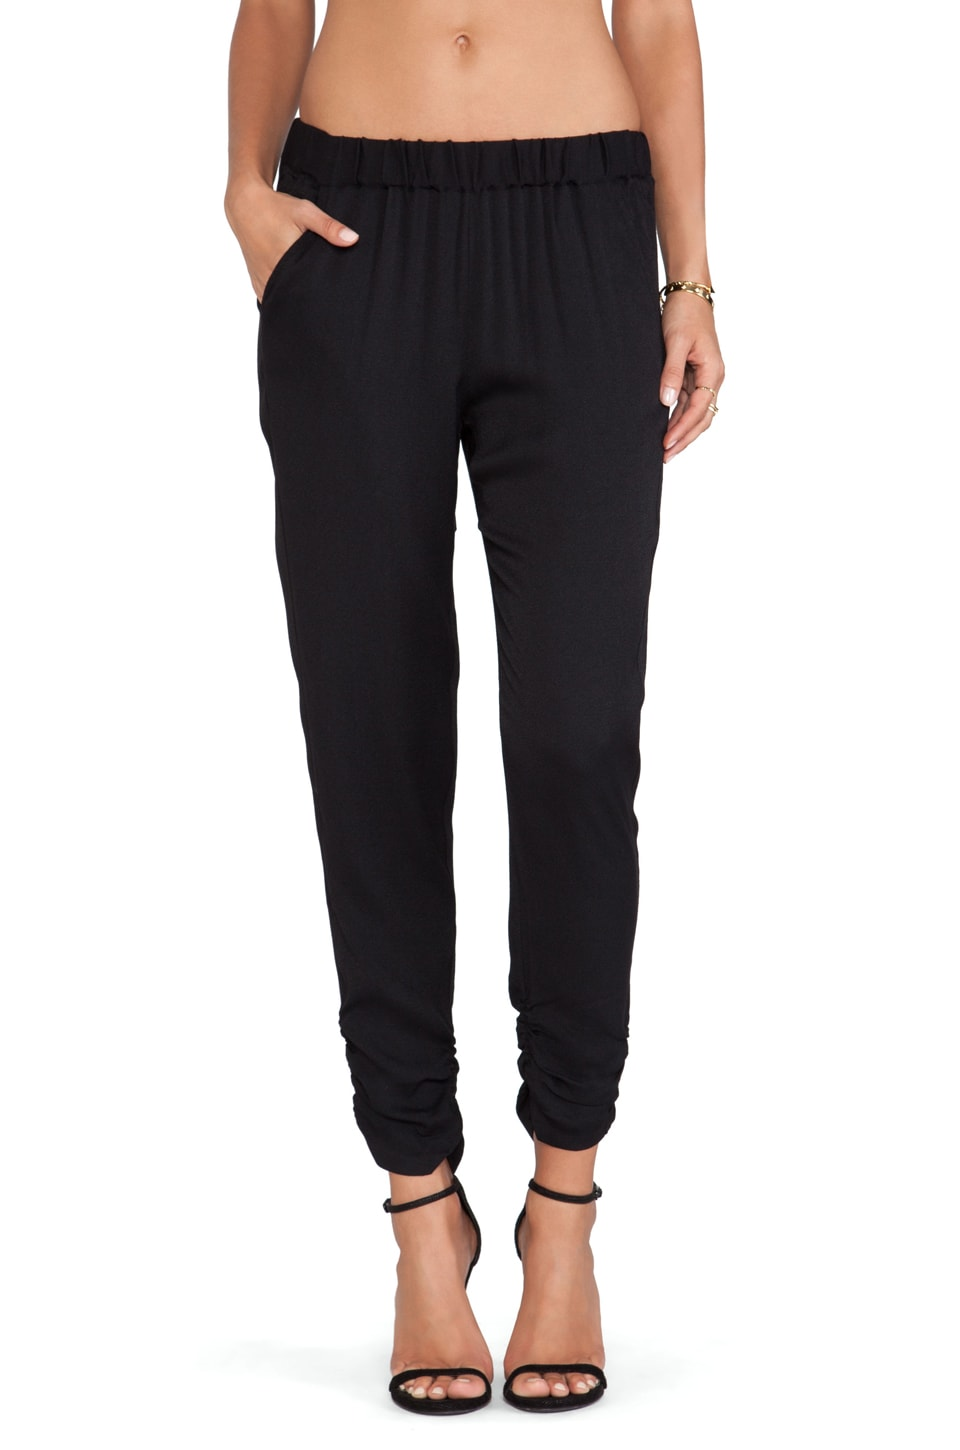 Ella Moss Ivana Ruched Ankle Pants in Black